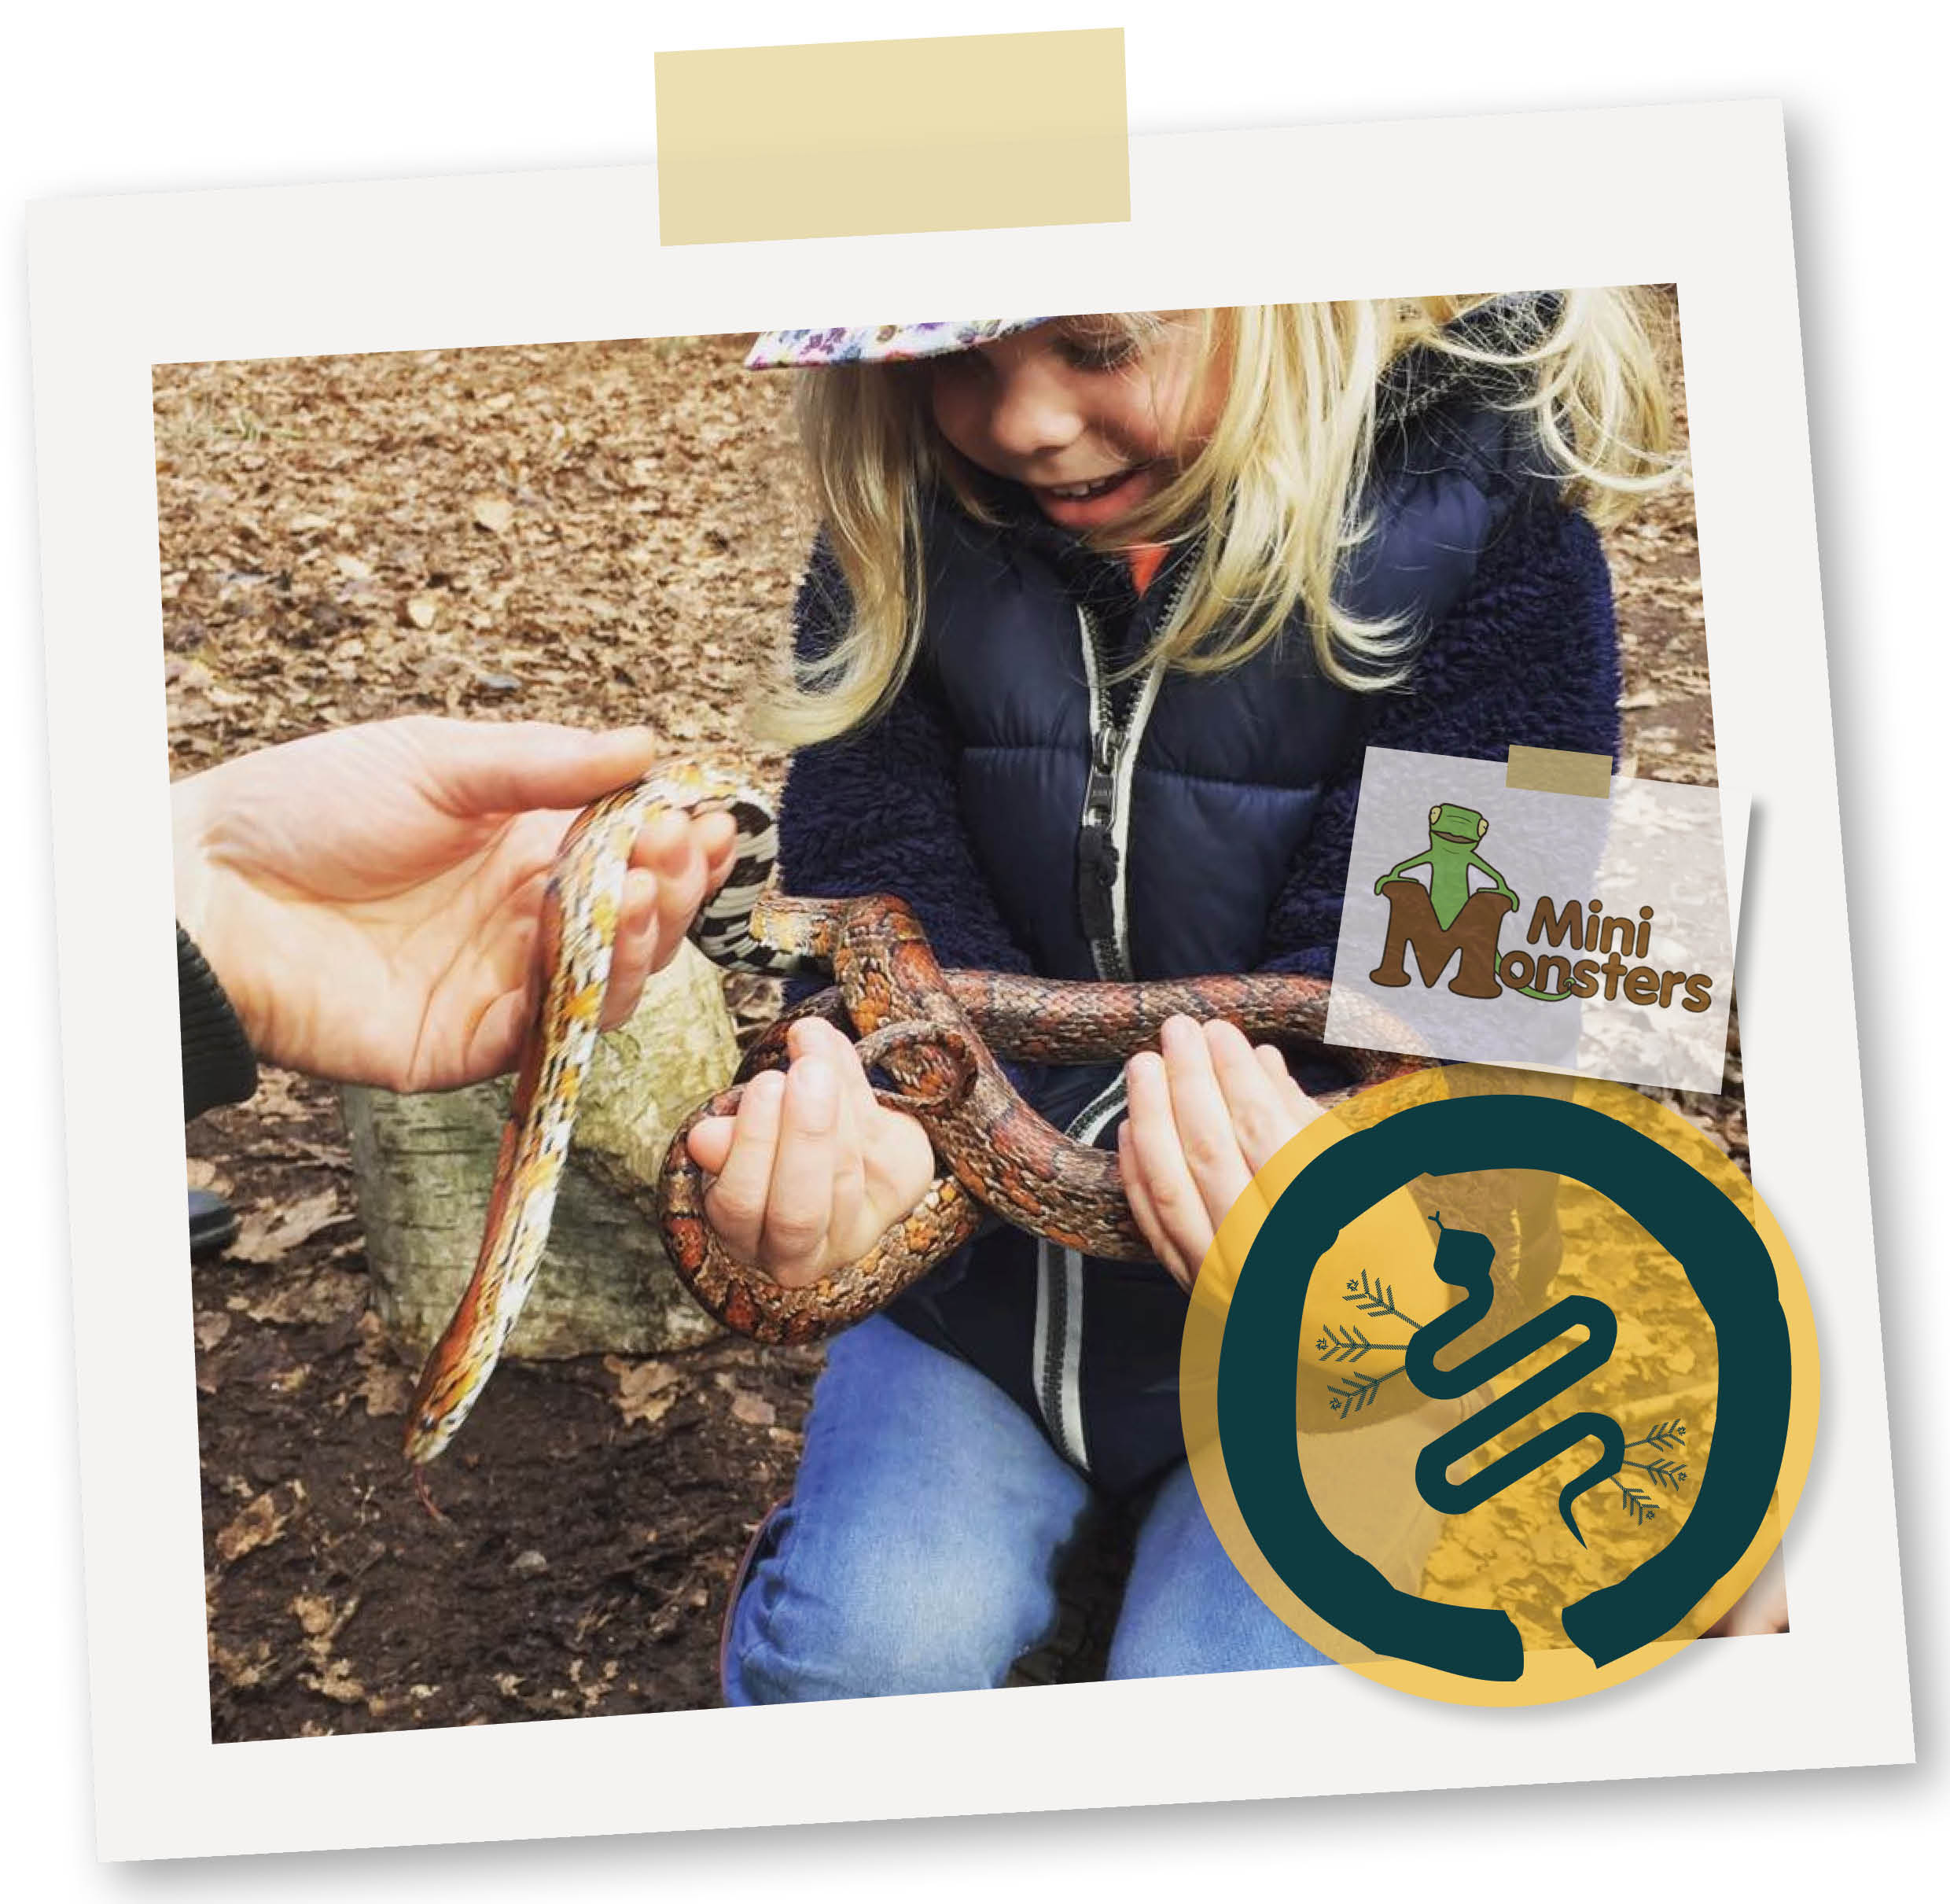 Mini Monsters - WITH THE MINI MONSTER TEAM...Meet Trinny the tarantula, make friends with a corn snake and stop Mildred the wiggly giant millipede from escaping! HAND'S ON LEARNING & PARTY FUN!2 hour partyPackages tailored for all ages£255 for up to 15 children(Available from EASTER - Sept only)